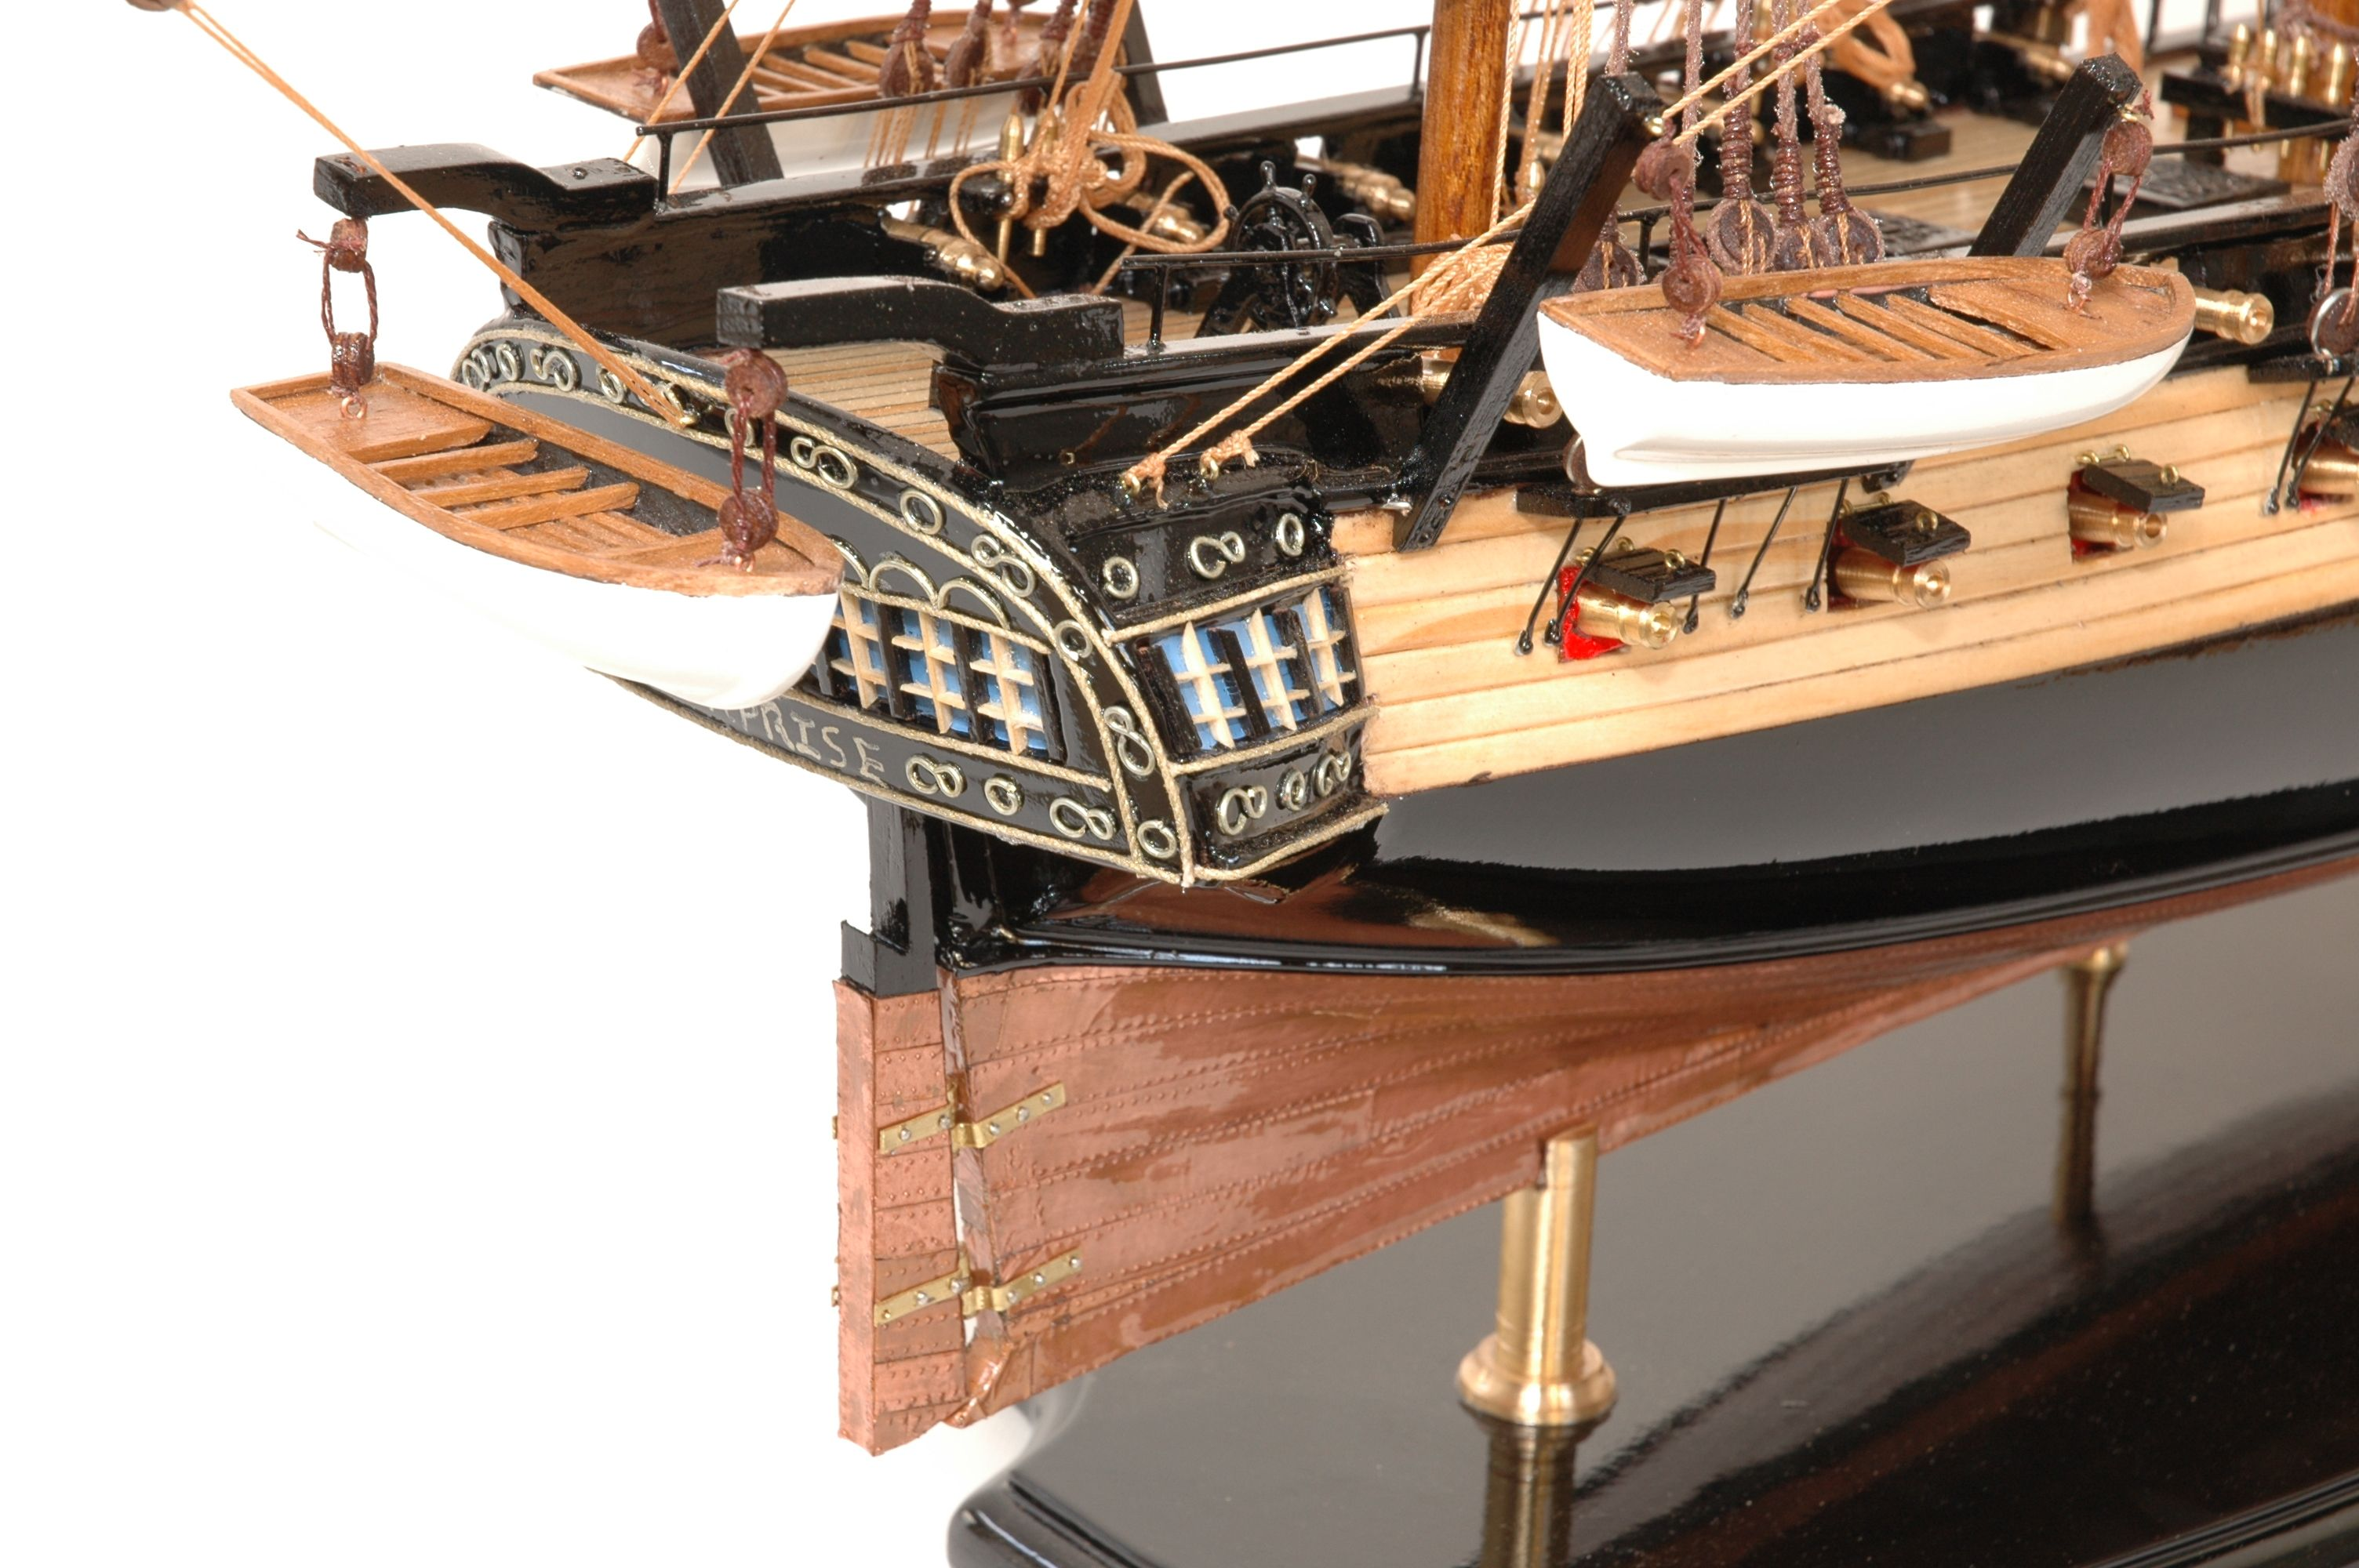 488-8344-HMS-Surprise-Model-Ship-Superior-Range